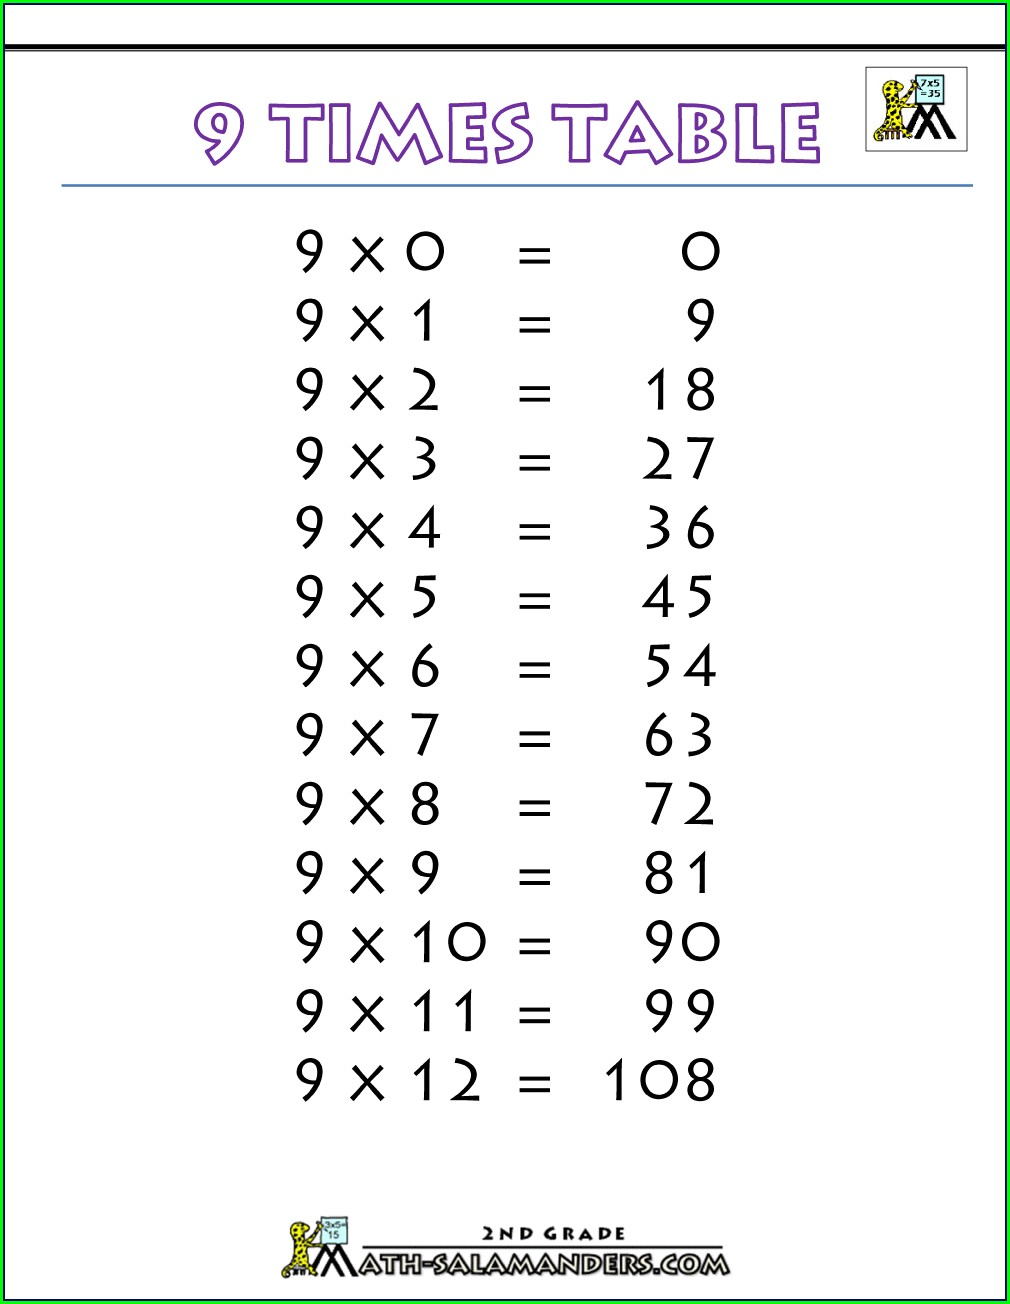 Times Table Worksheet Maker